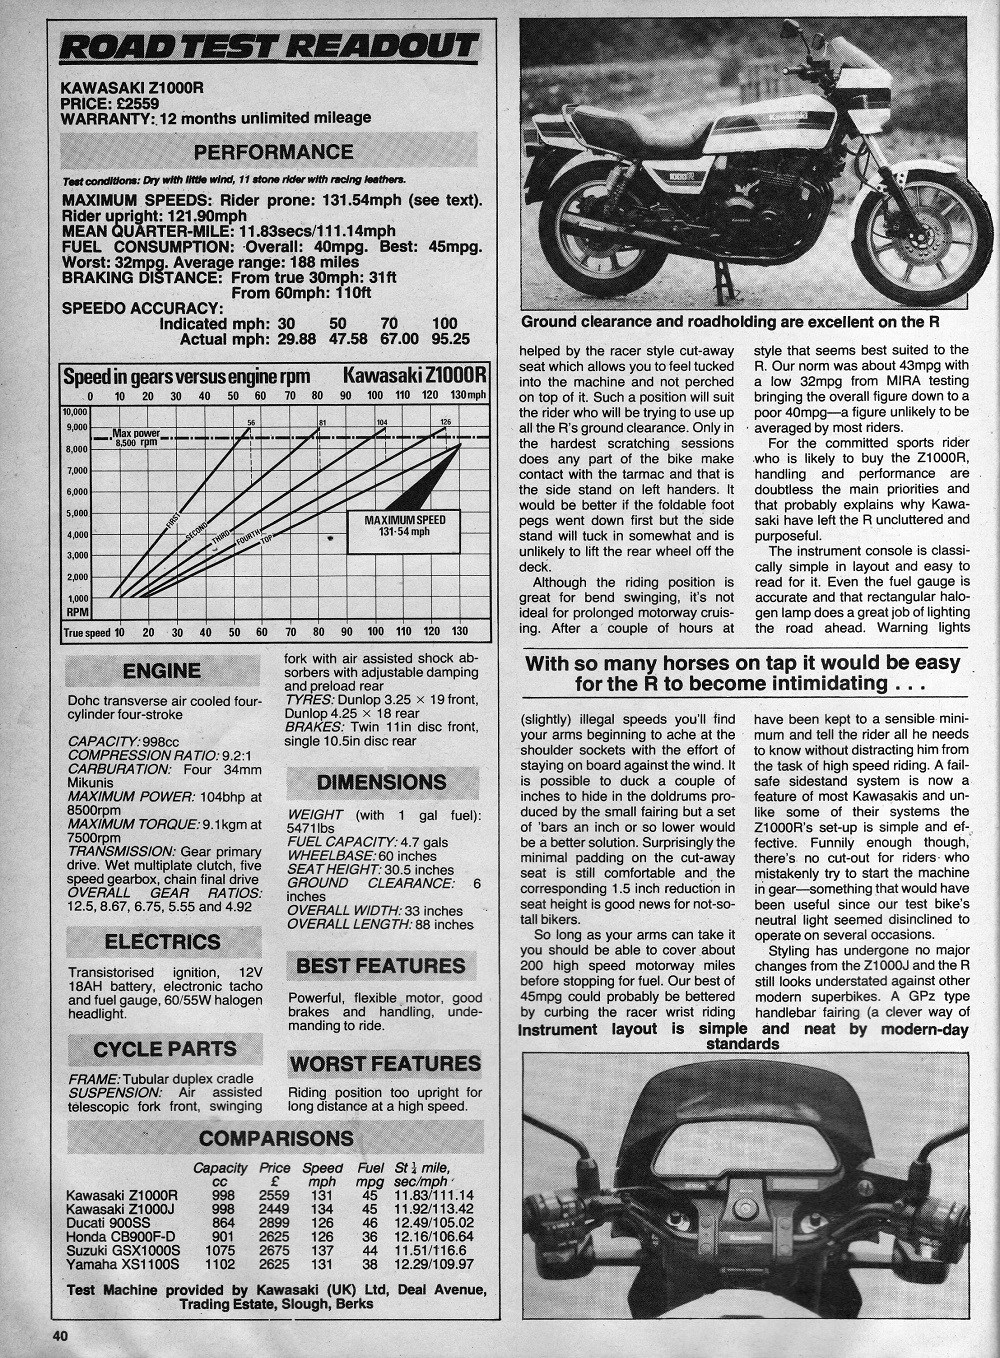 1983 Kawasaki Z 1000R road test.4.jpg